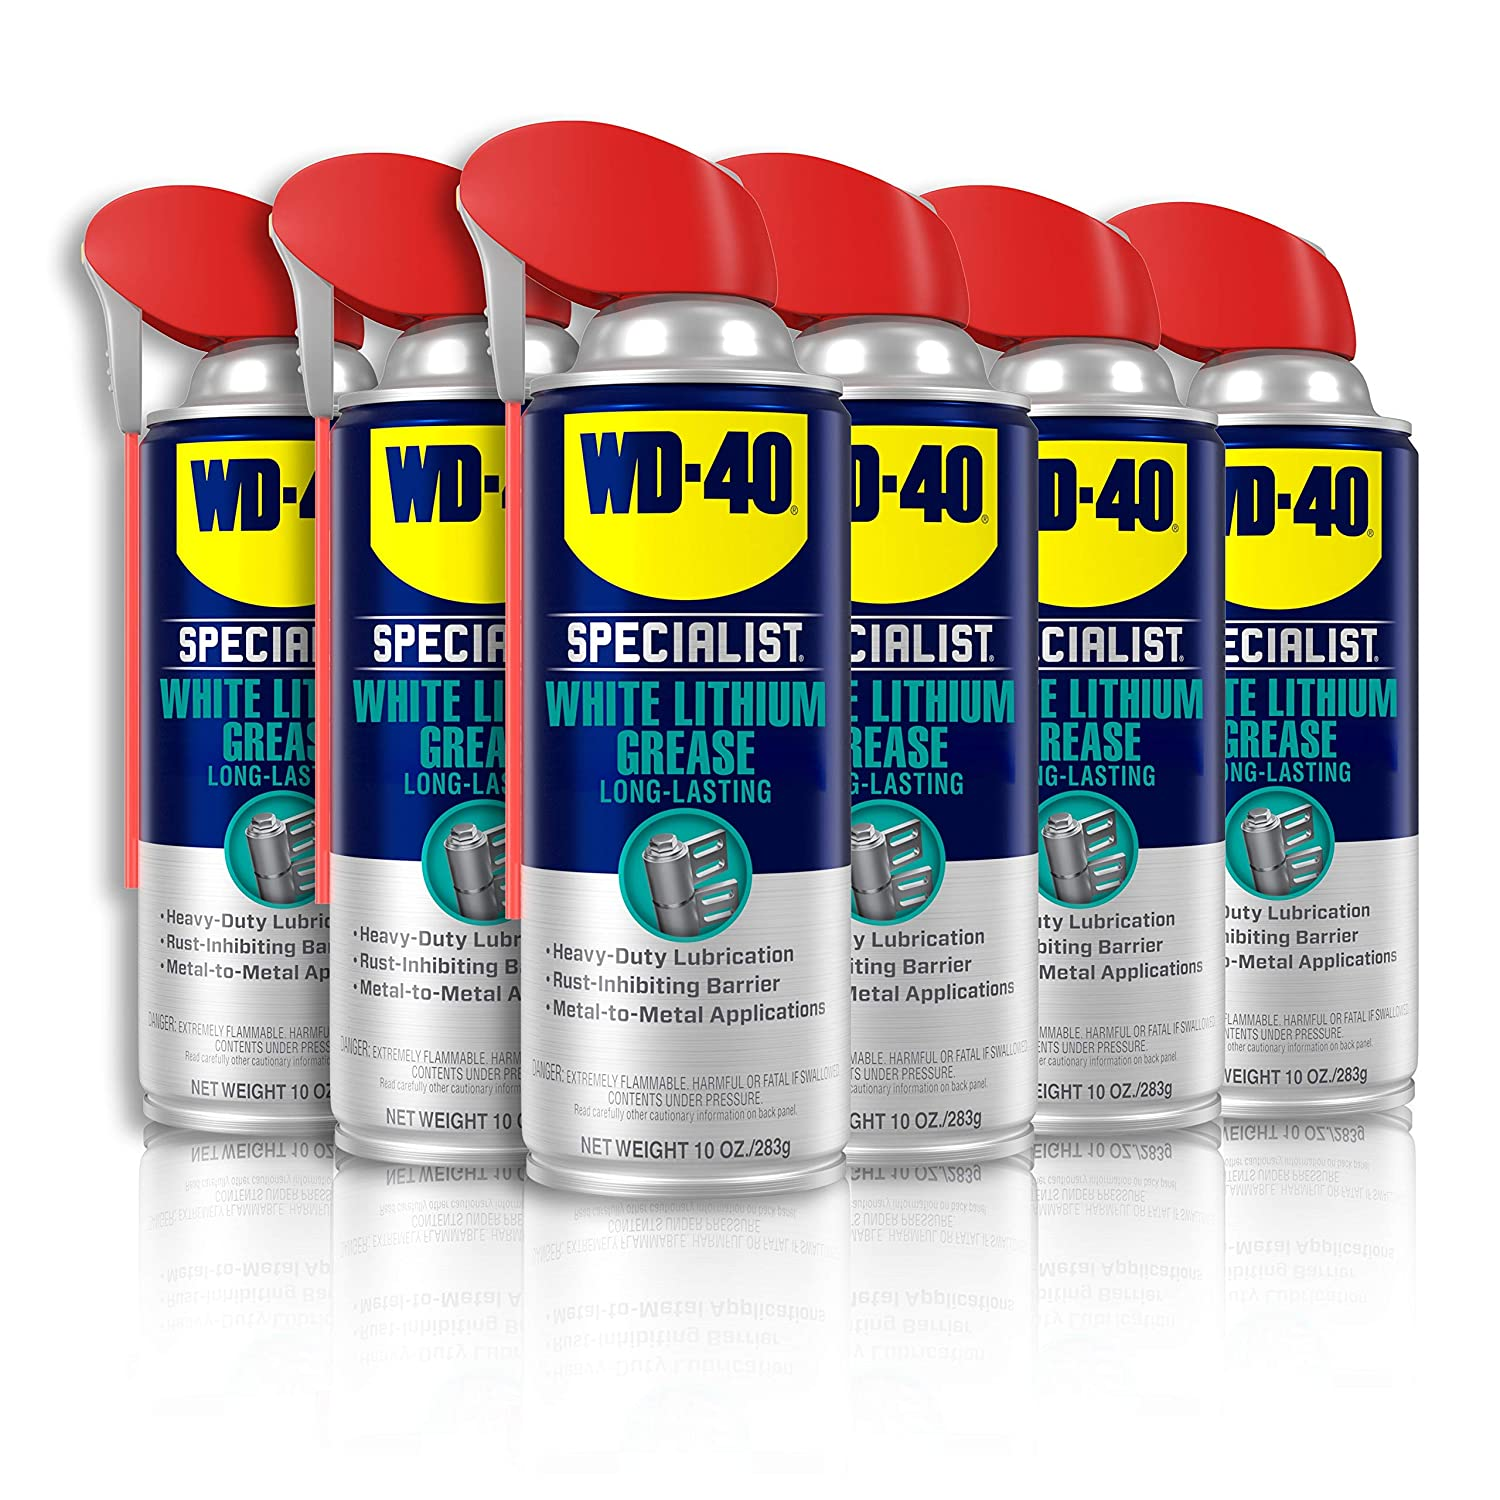 WD-40 - Outstanding 300240 Specialist White SMART with Spray Lithium Bombing free shipping Grease